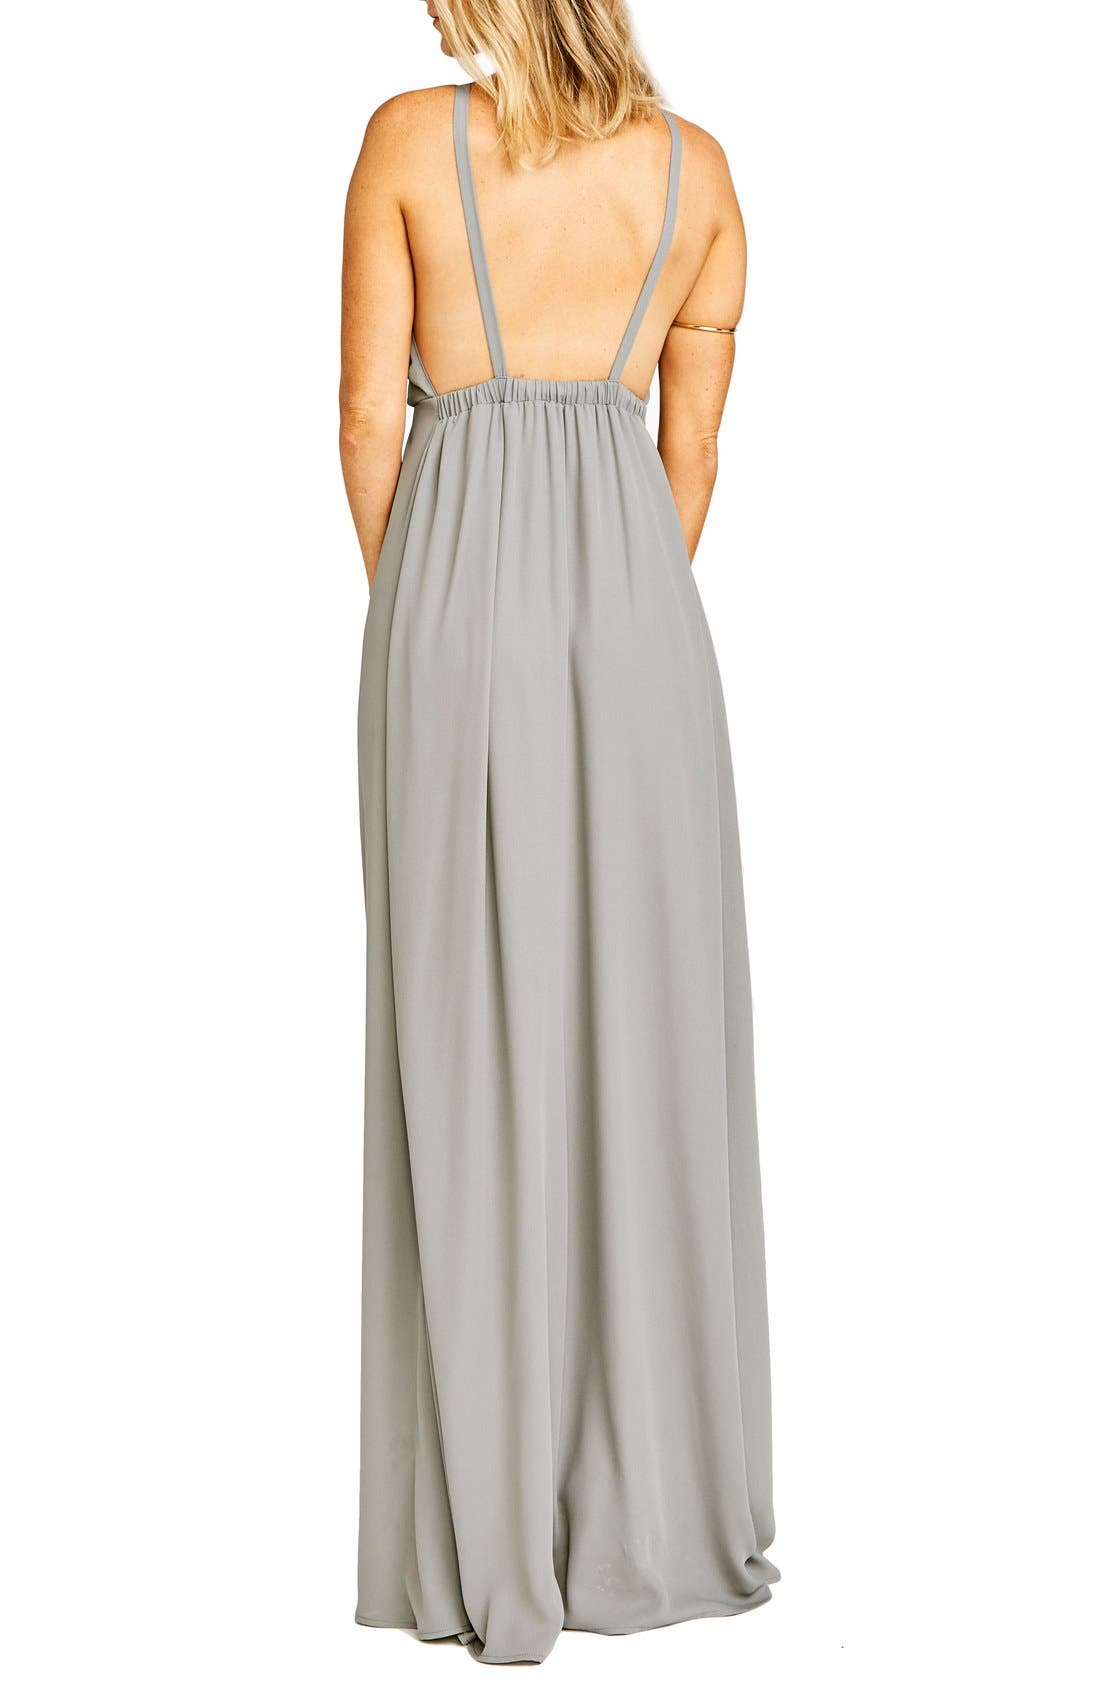 Amanda Open Back Blouson Gown,                             Alternate thumbnail 21, color,